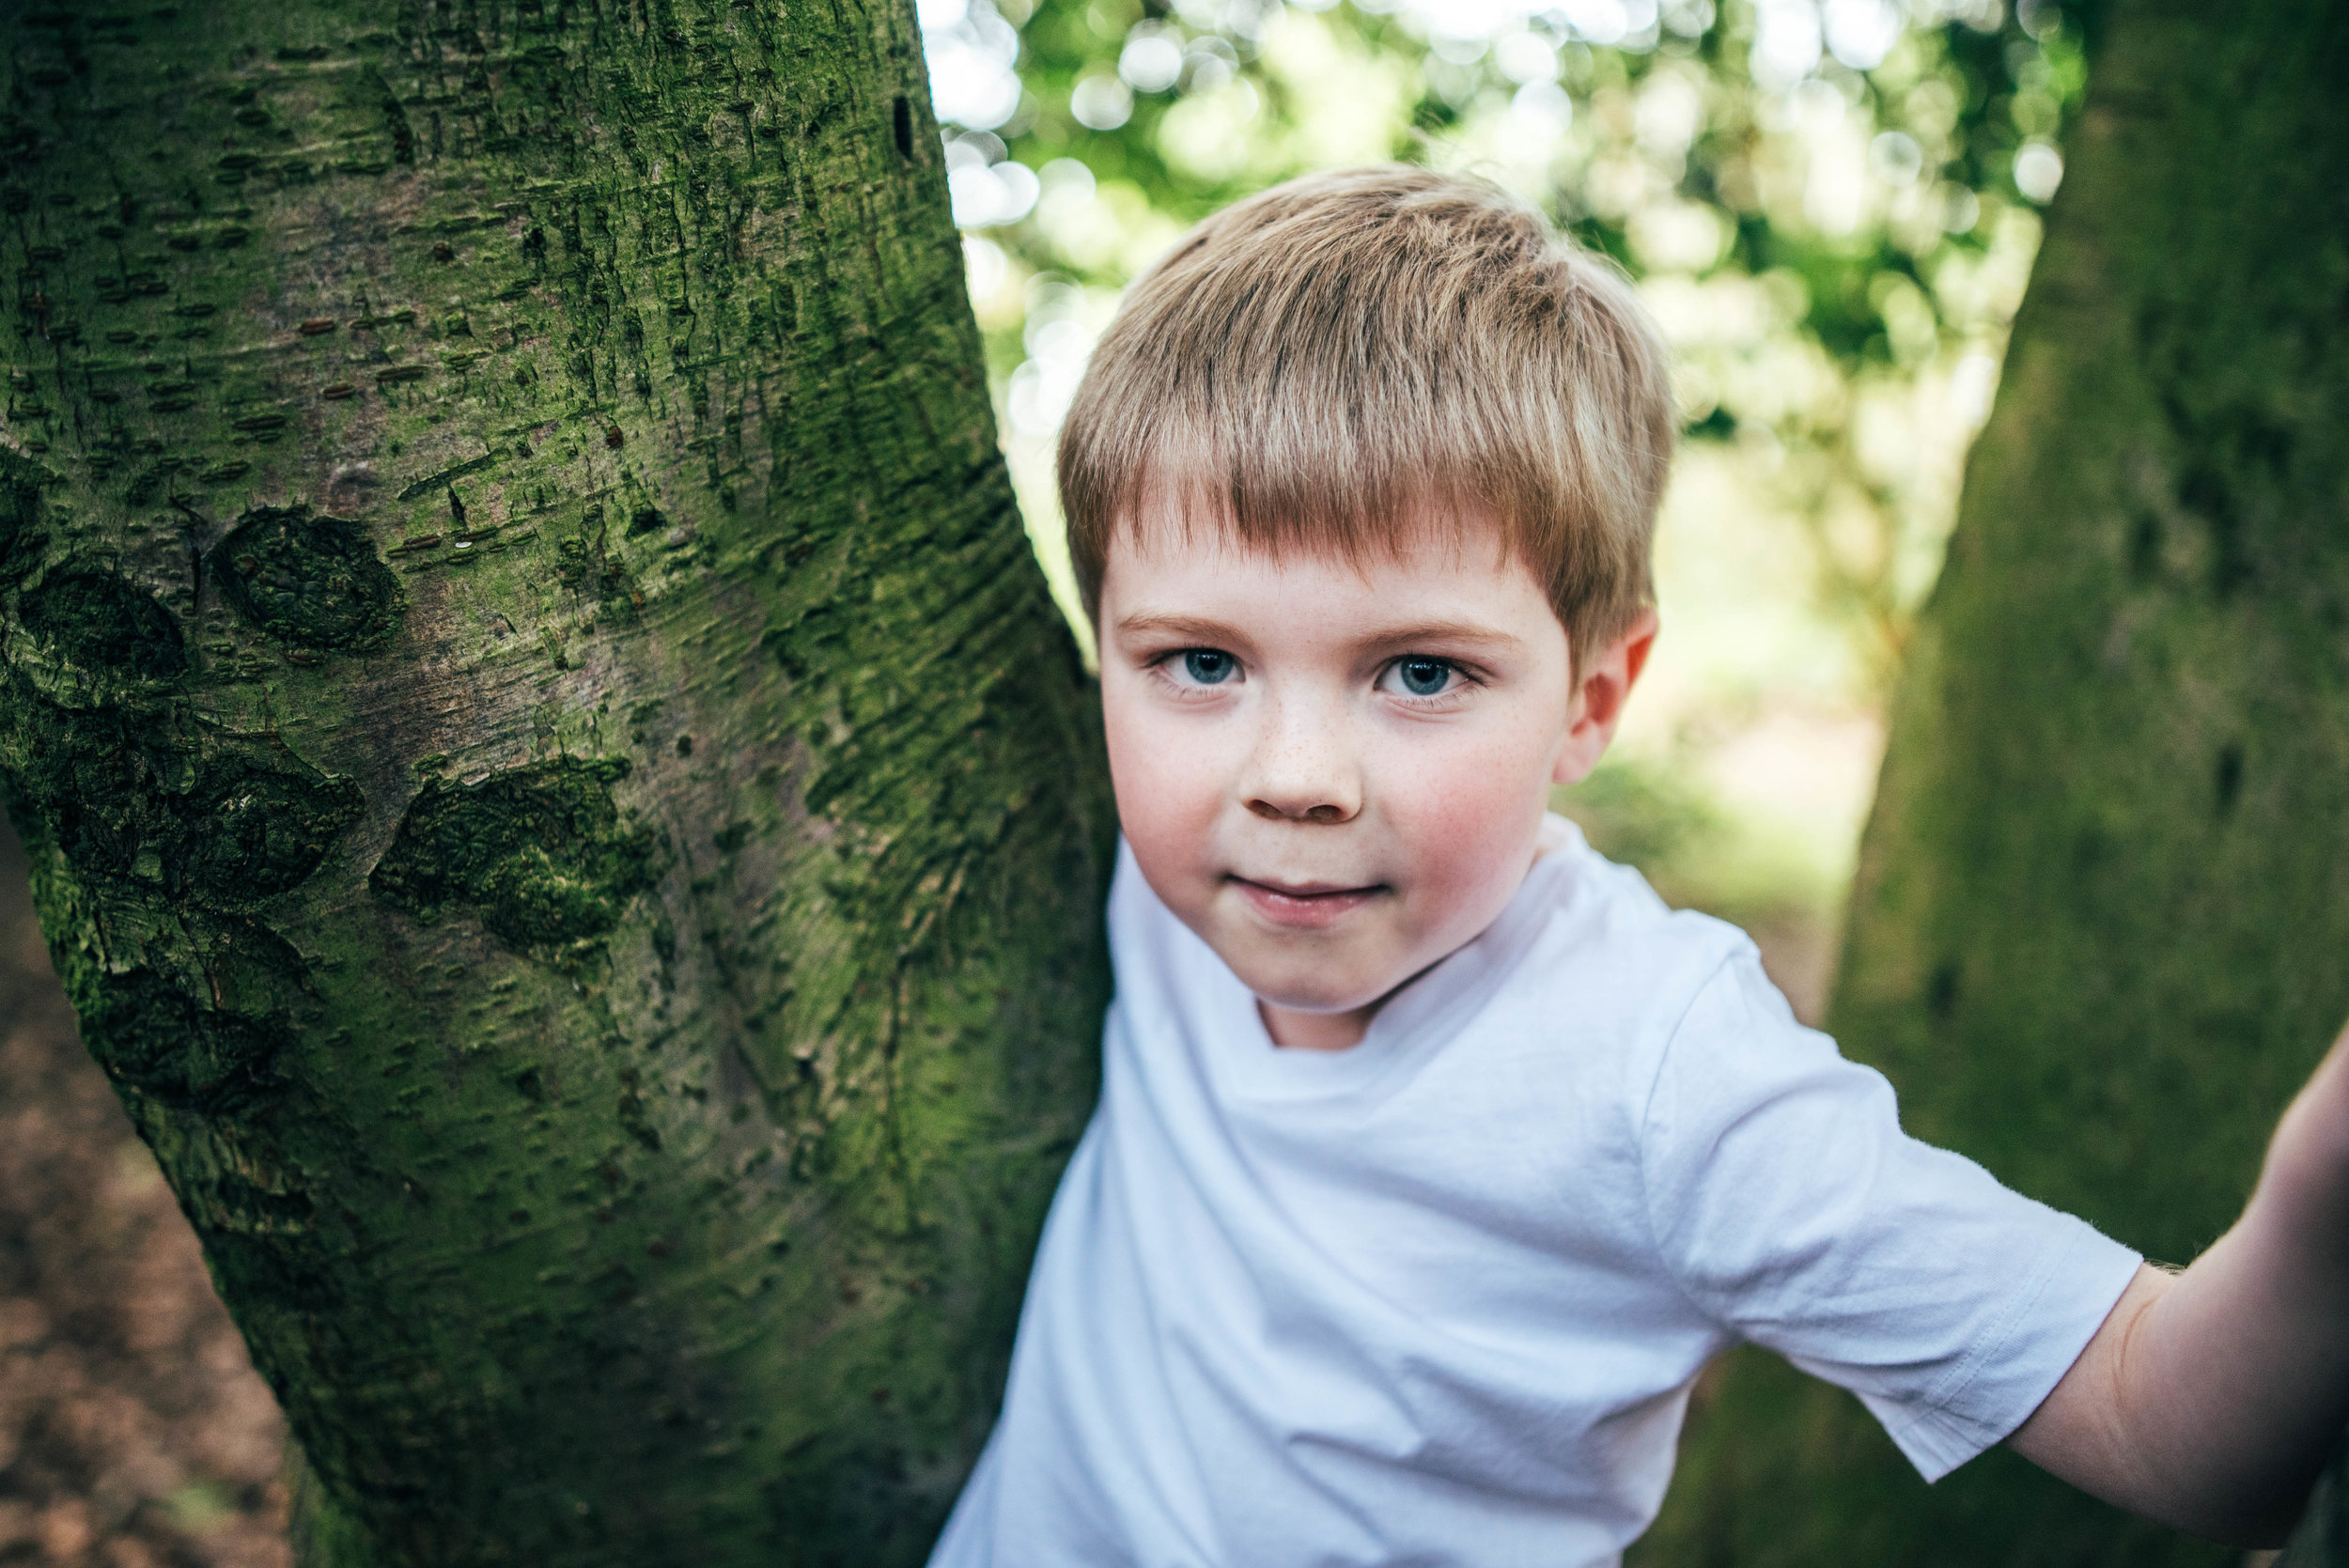 Little boy in tree in park in Spring Essex & London Documentary Family Photographer Lifestyle